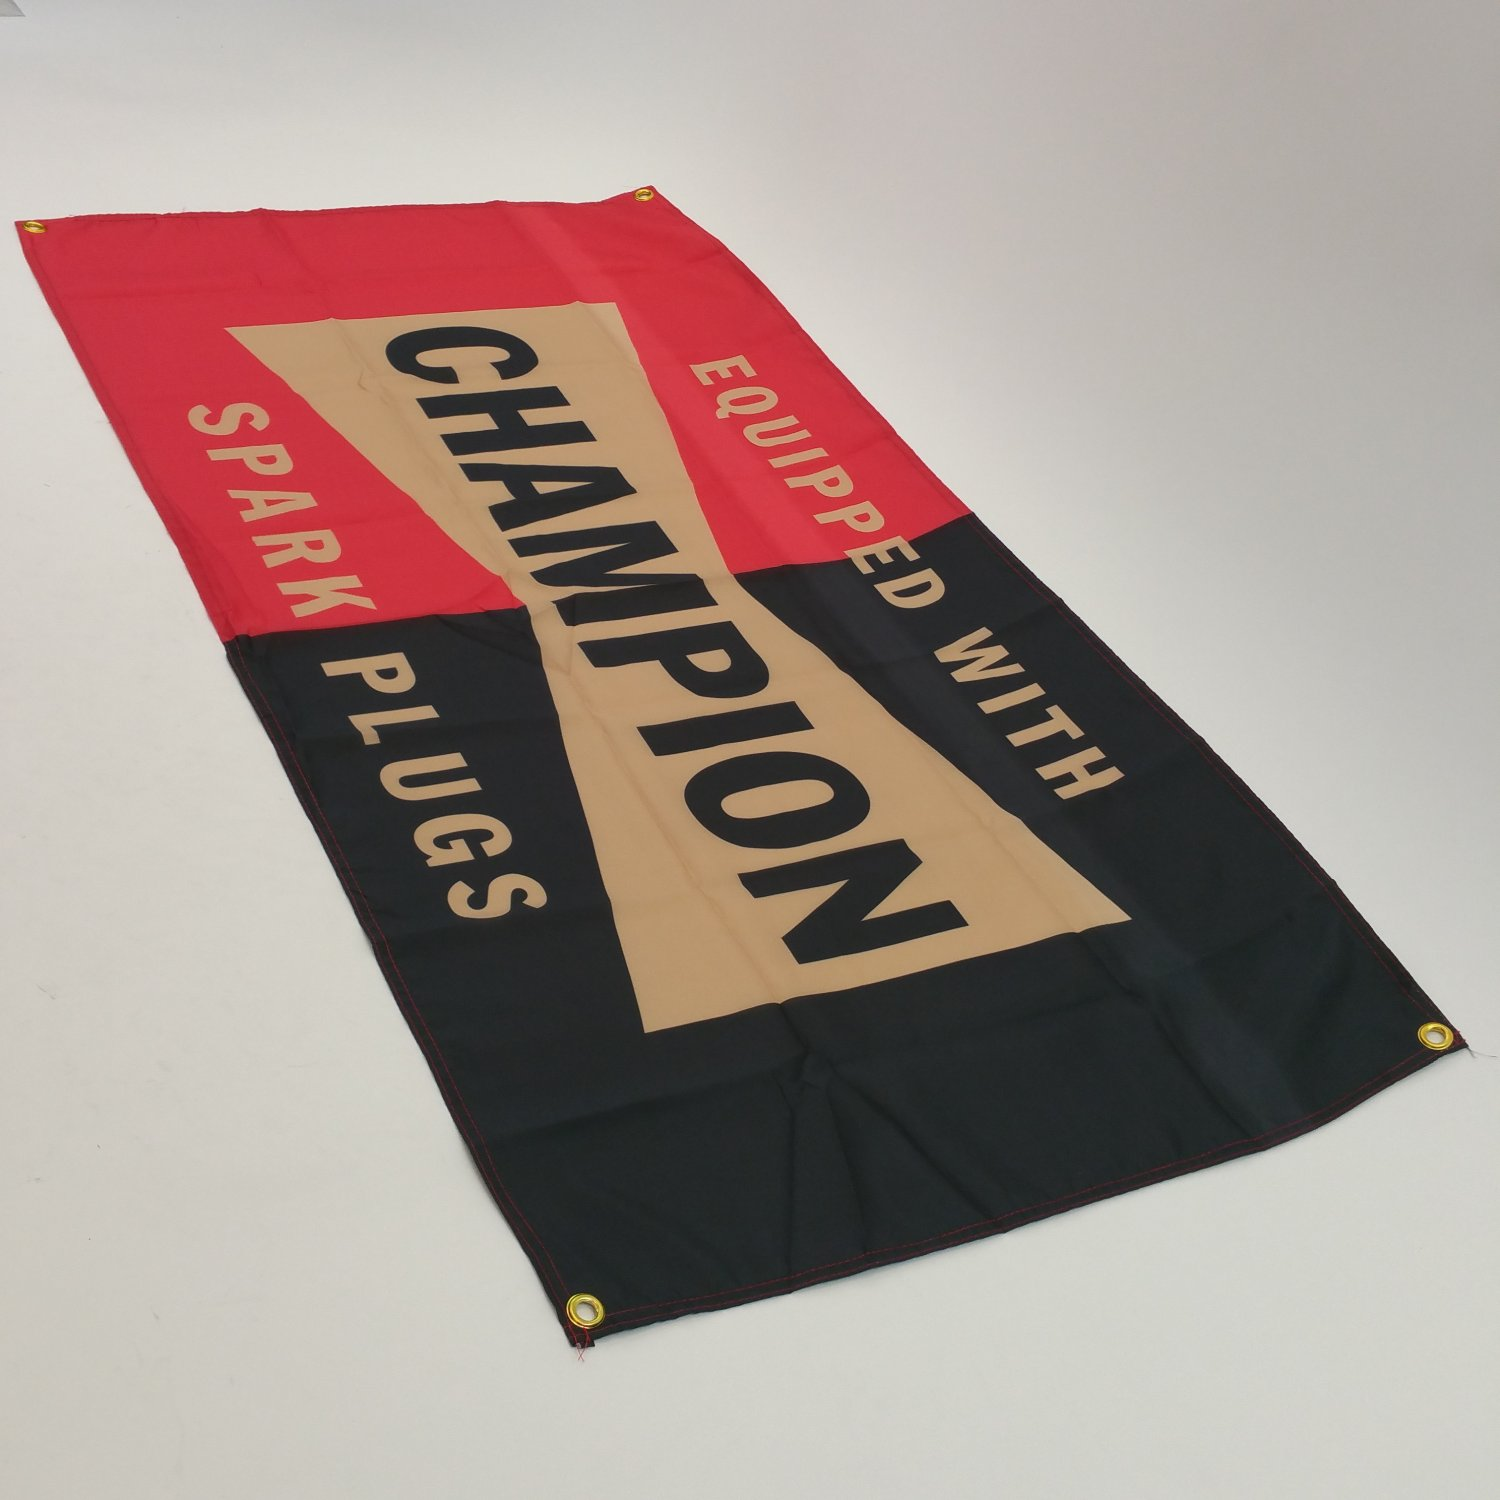 Champion Spark Plugs Advertising Flag Wall Banner Garage Vintage Classic Dealer